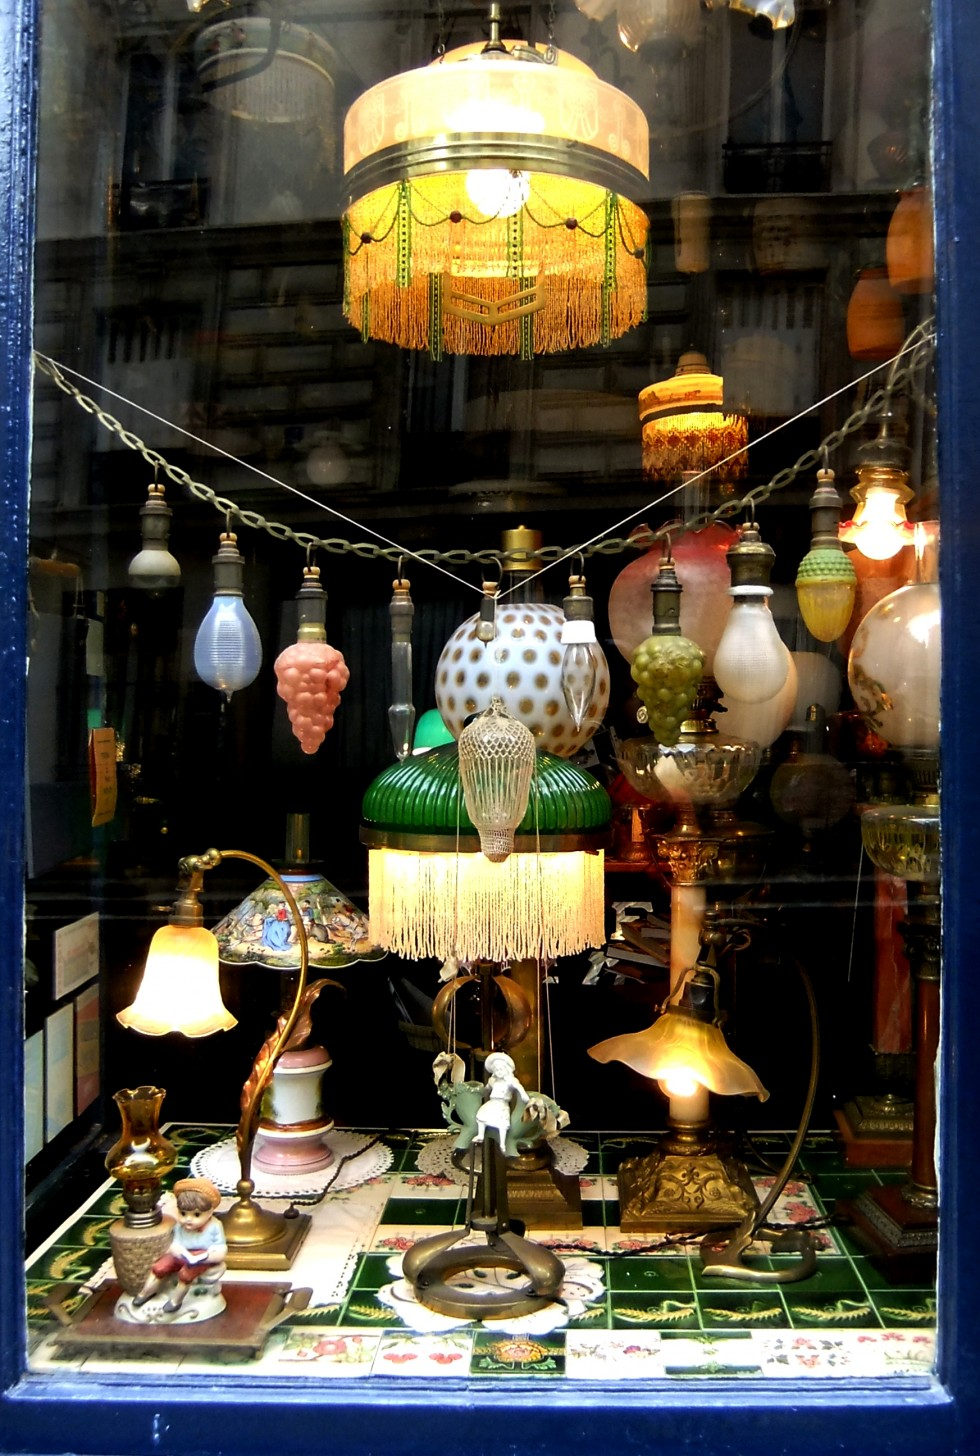 The best lighting design stores in Paris arlumiere paris The best lighting design stores in Paris The best lighting design stores in Paris arlumiere e1457461814159